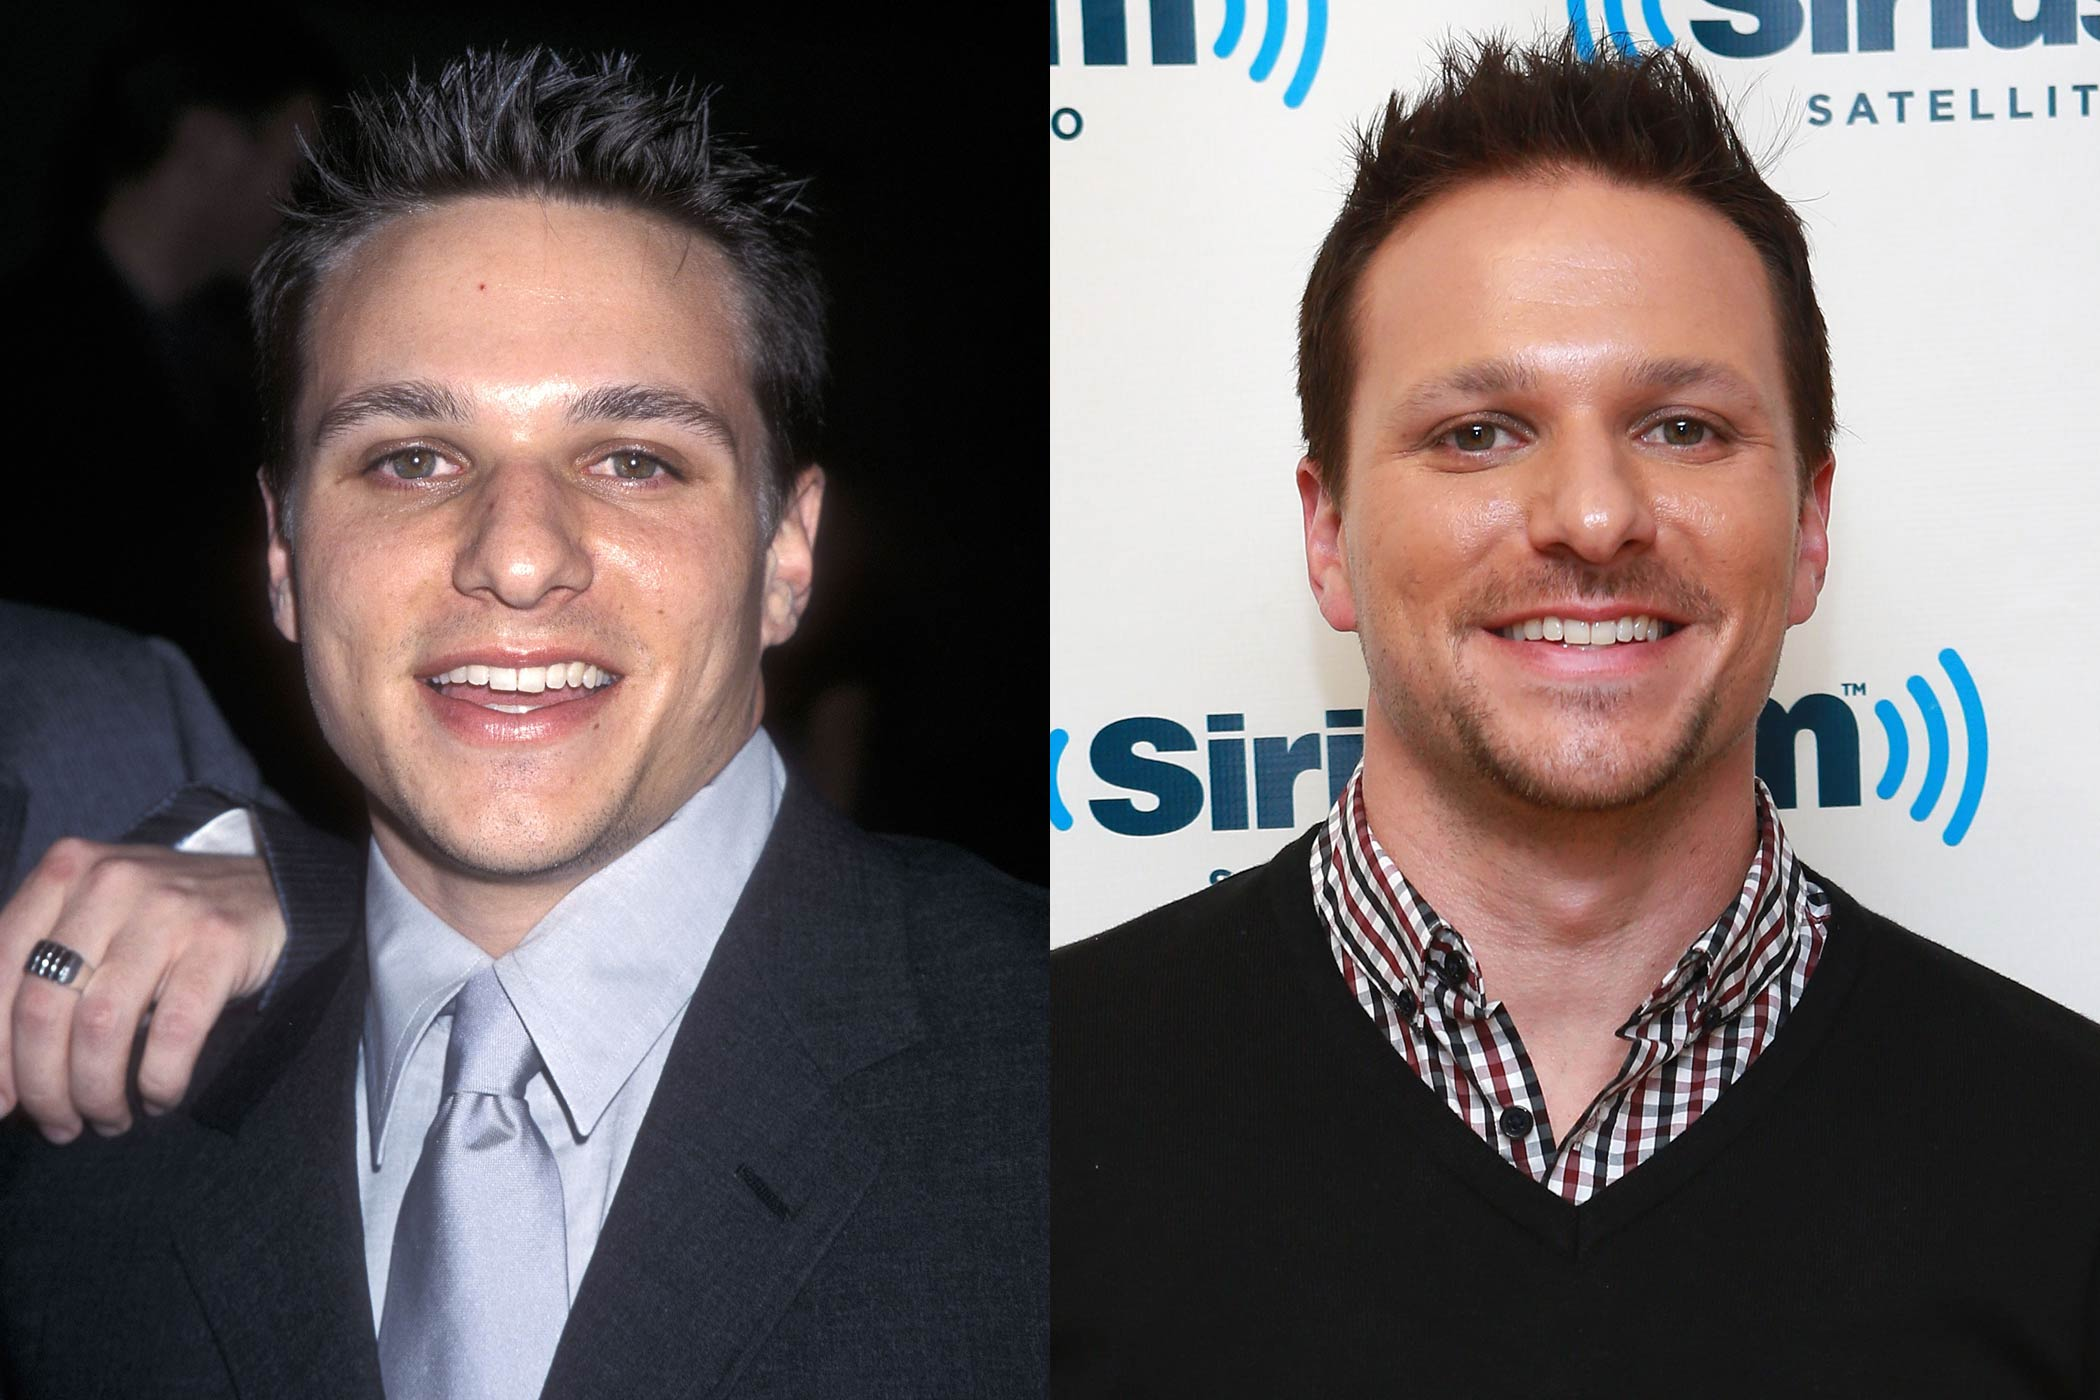 <strong>Drew Lachey (98°)</strong>